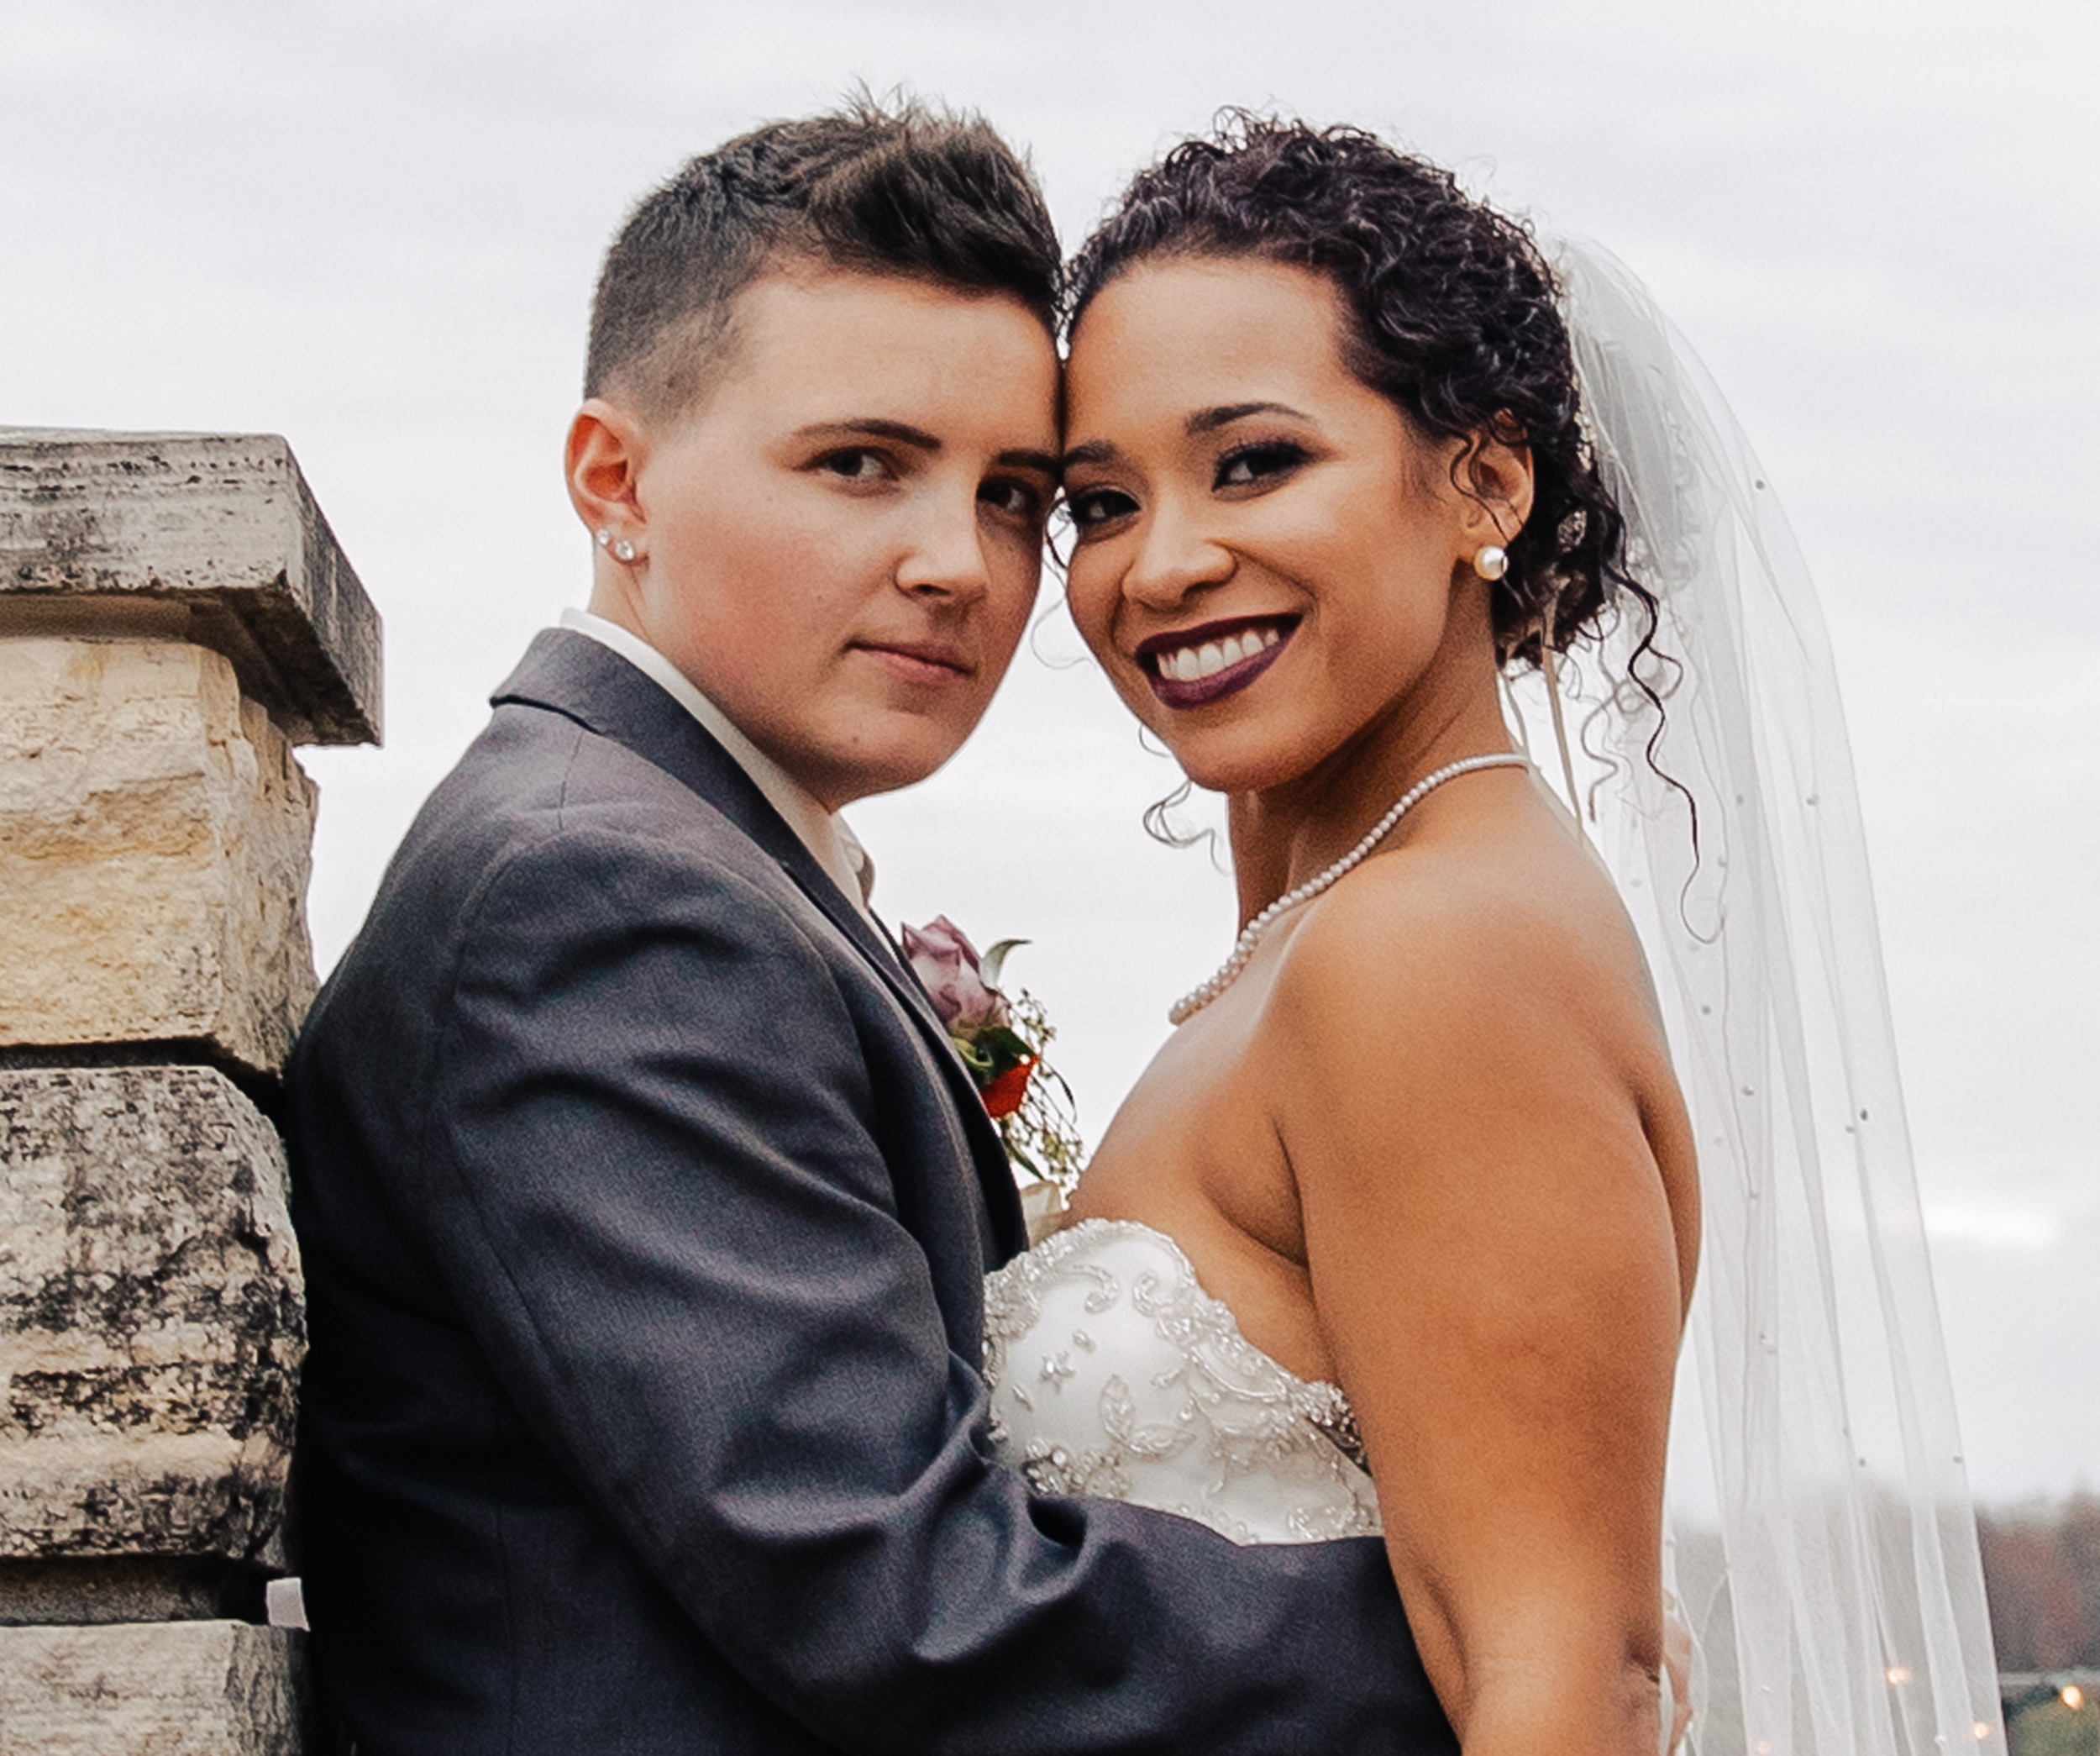 Carly + Dumayi - See their Story